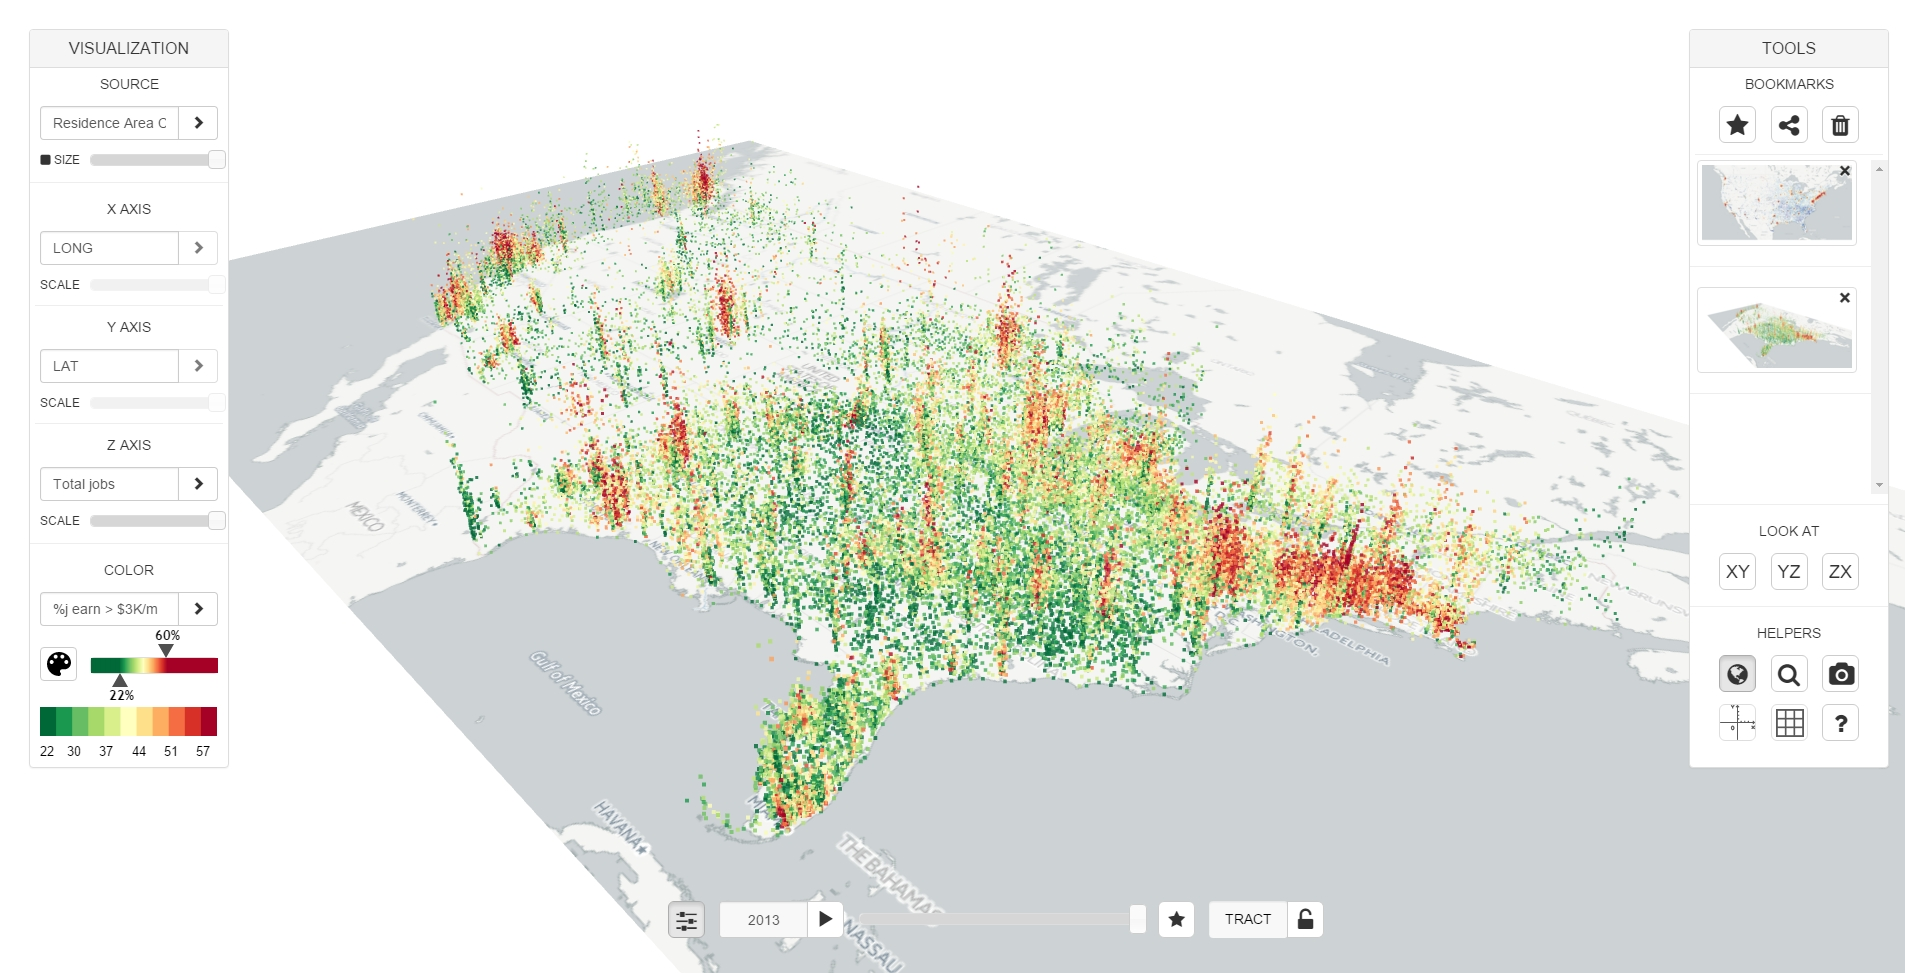 web tool helps people visualize make sense of large